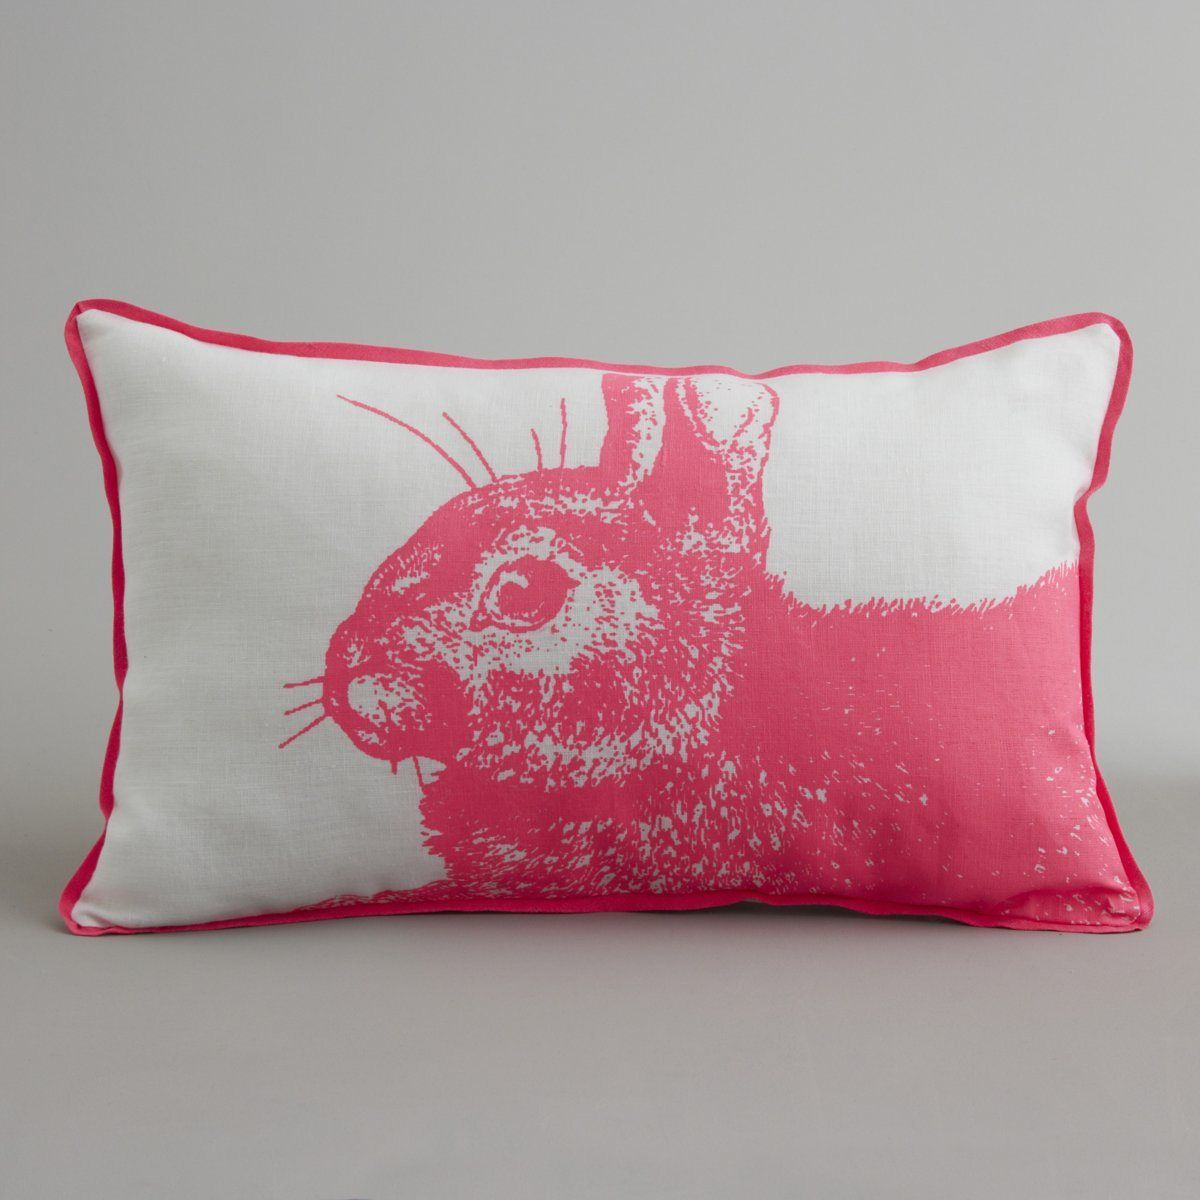 Objet Deco Lapin Housse De Coussin Rabbit Am Pm Objects And Design